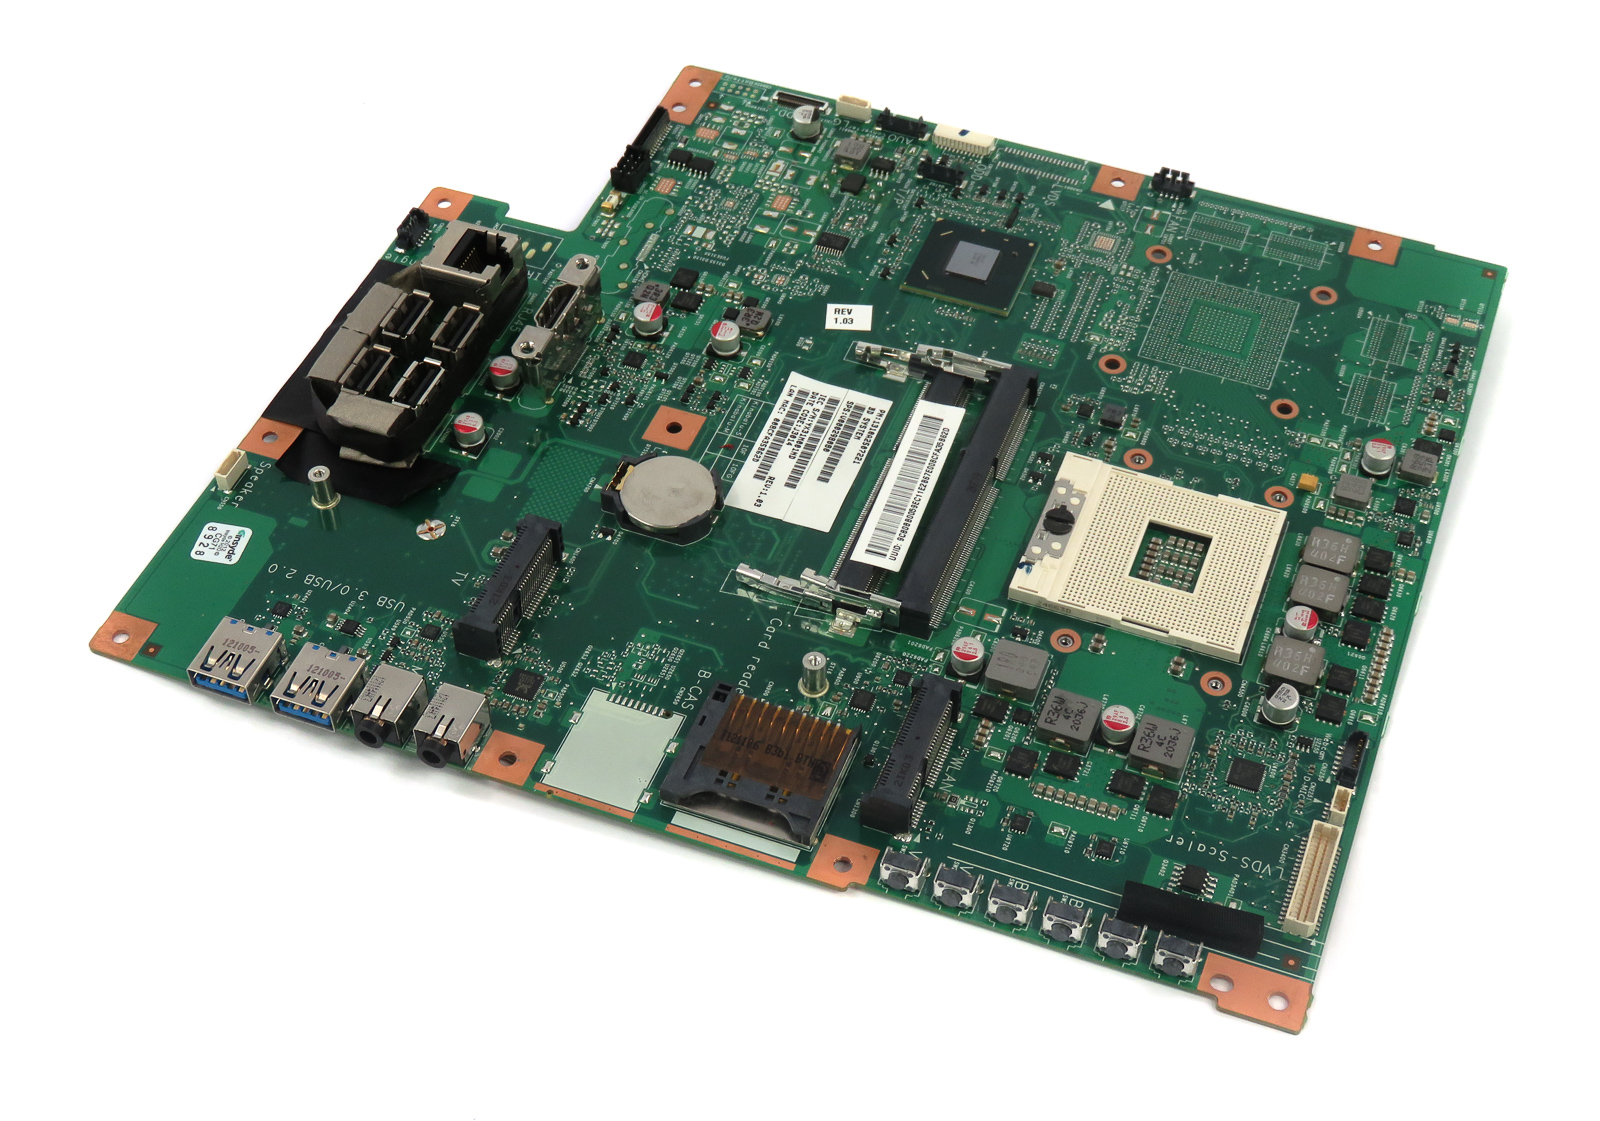 Toshiba LX830-11D System Motherboard - P/N 1310A2507221 - SPS: V000298080